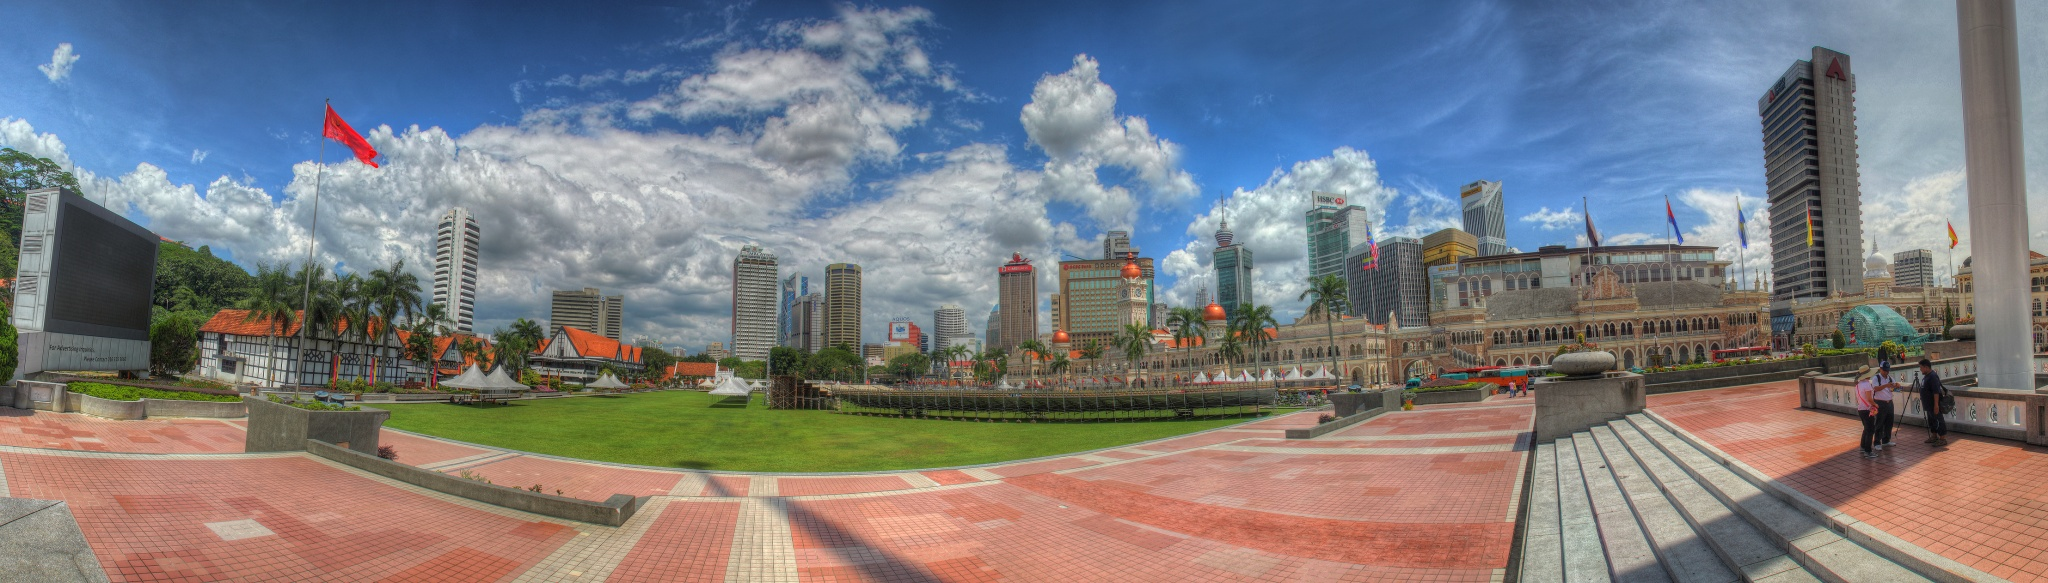 Which is better for travel & tourism - Singapore or Malaysia?